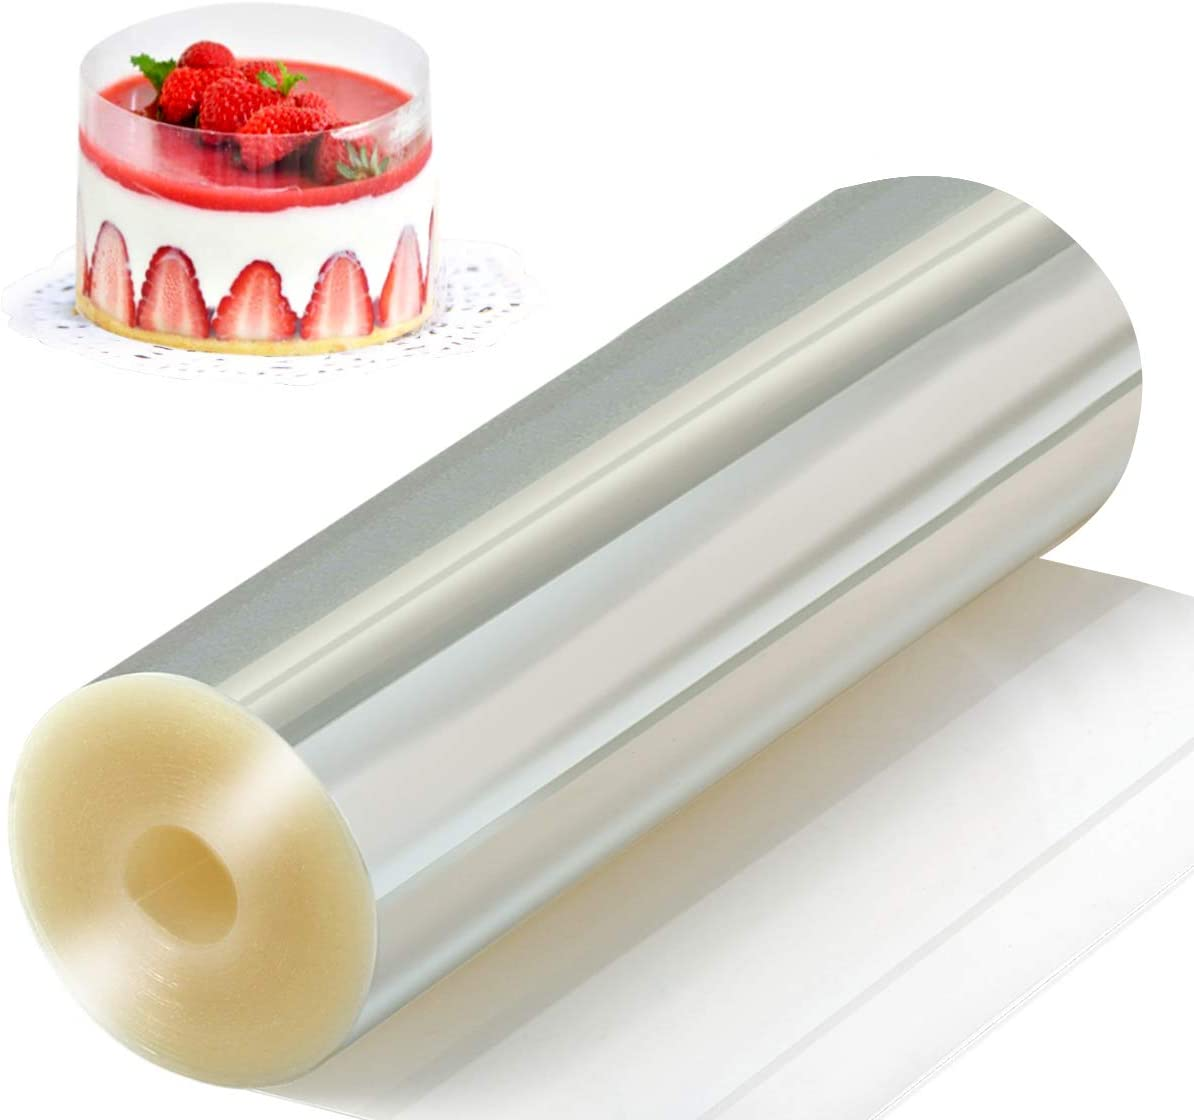 Amytalk Cake Collars 6.3 x 394inch, Acetate Rolls, Clear Cake Strips, Transparent Cake Rolls, Mousse Cake Acetate Sheets for Chocolate Mousse Baking, Cake Decorating